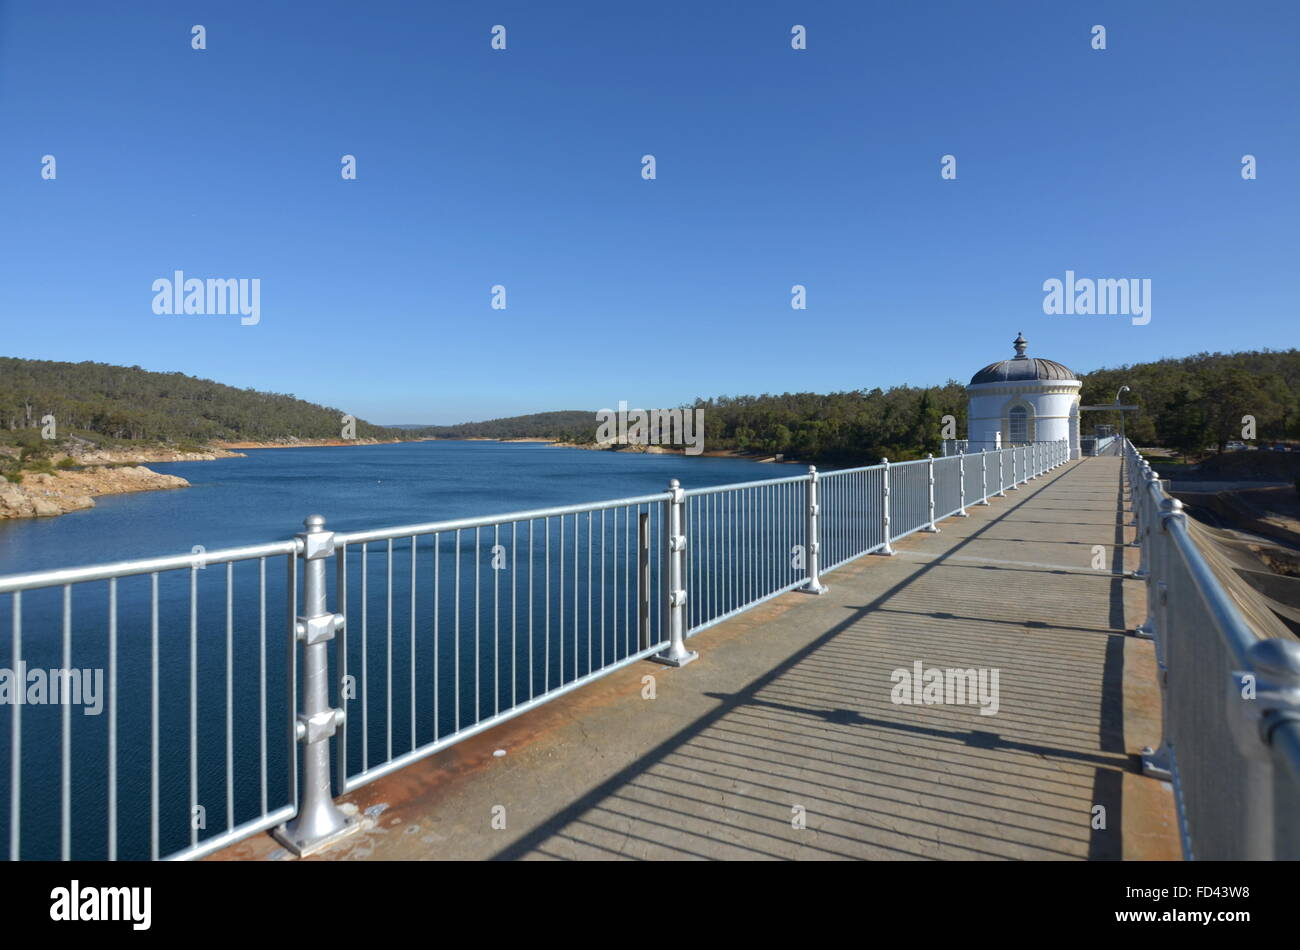 The walkway on top of the Mundaring Weir dam, Perth, Western Australia - Stock Image